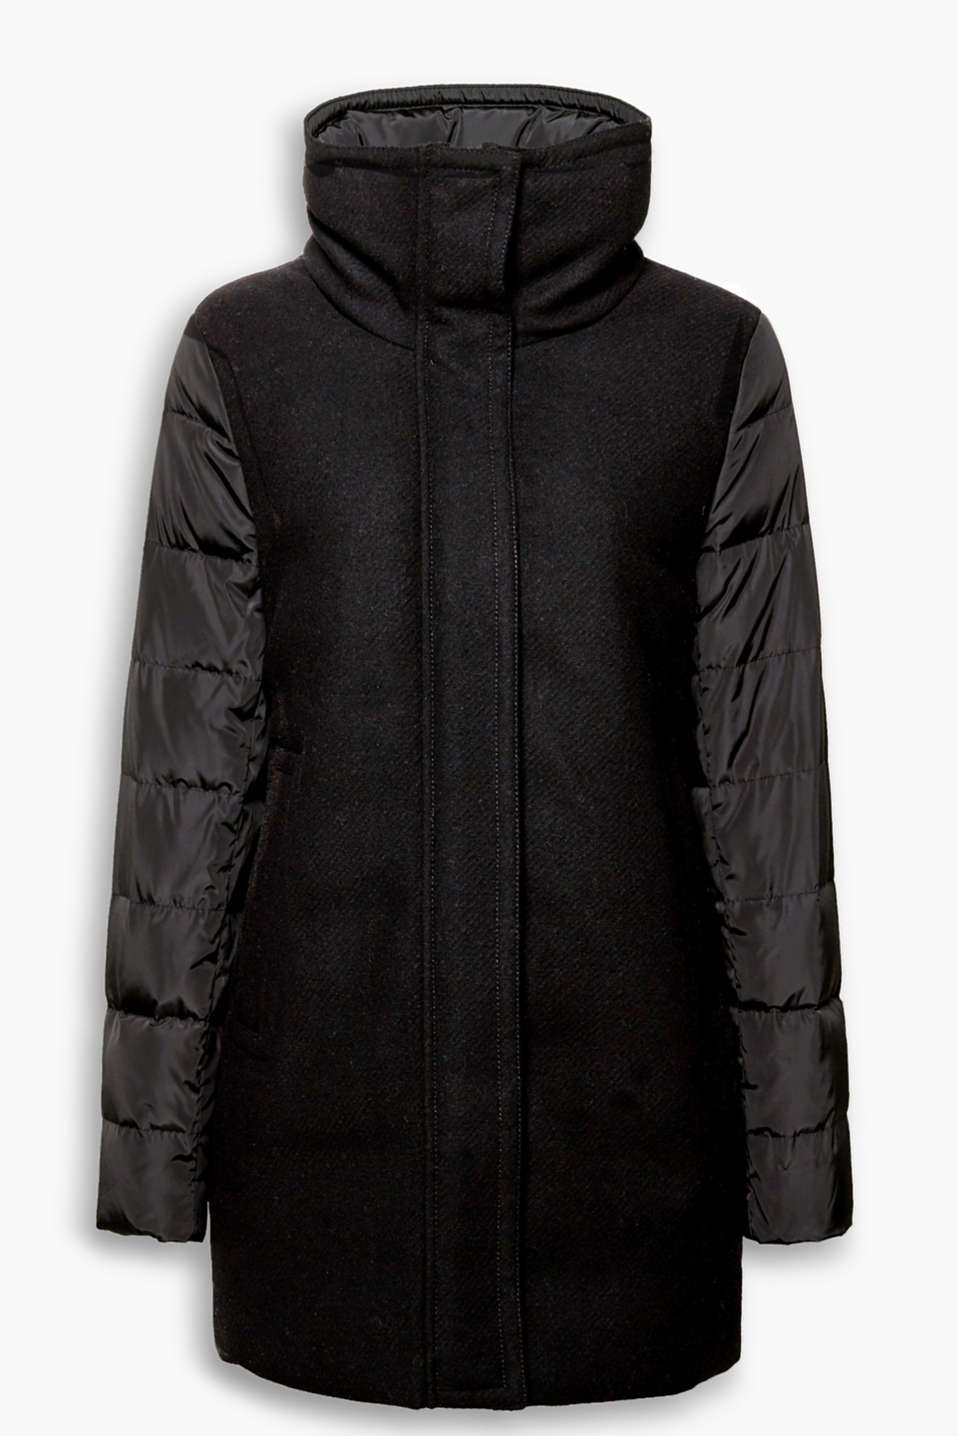 Ultra trendy, with high-performance features: RDS certified down coat in a combination of materials